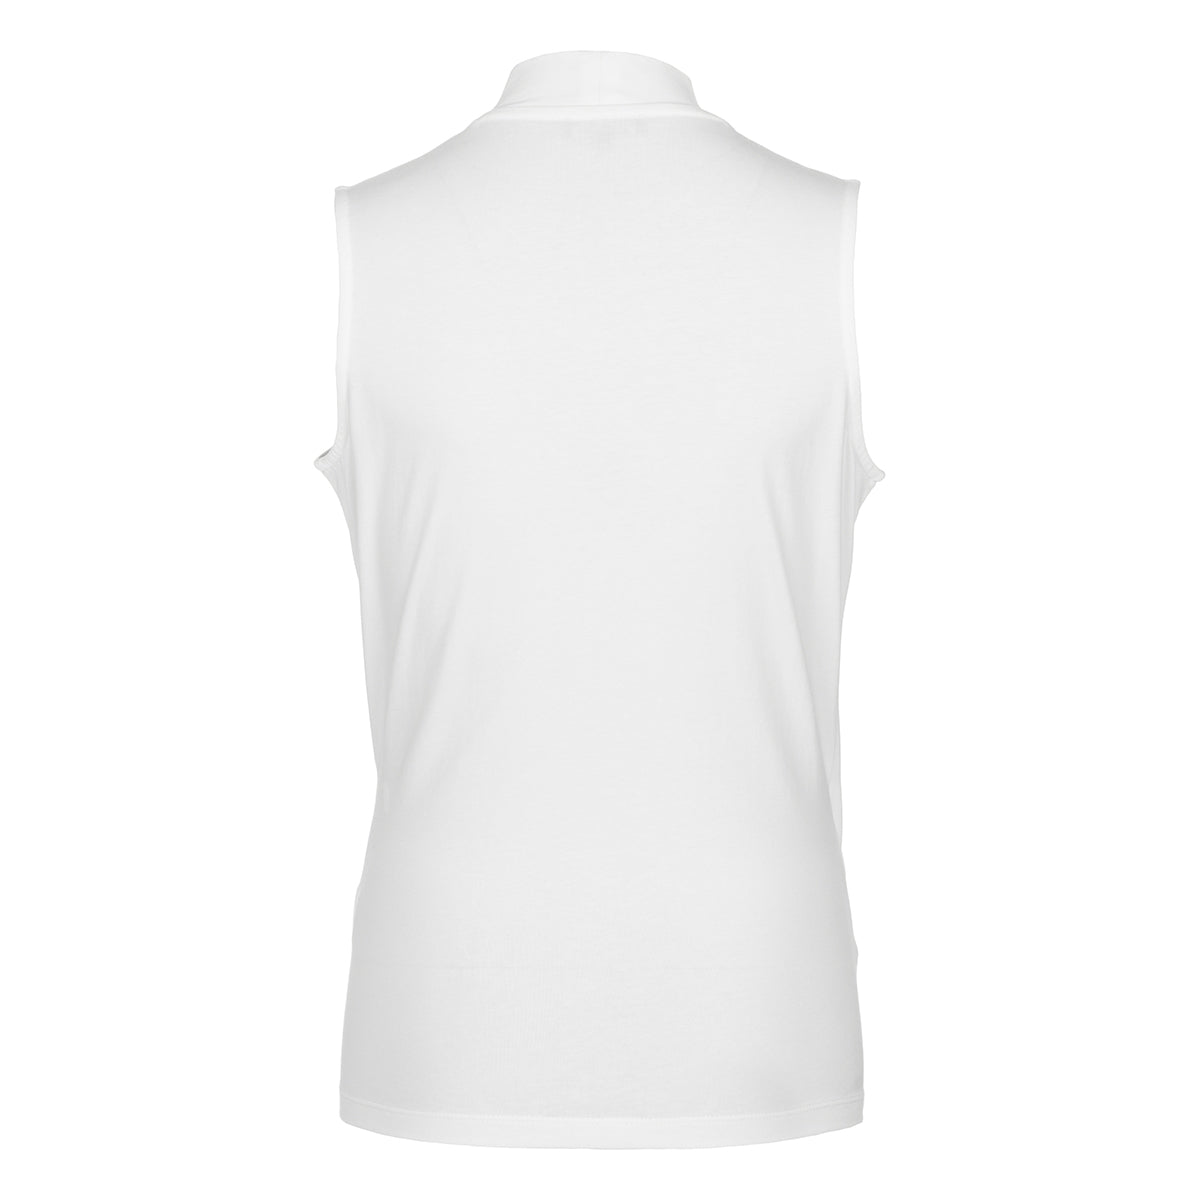 Top Overslag Mouwloos | White